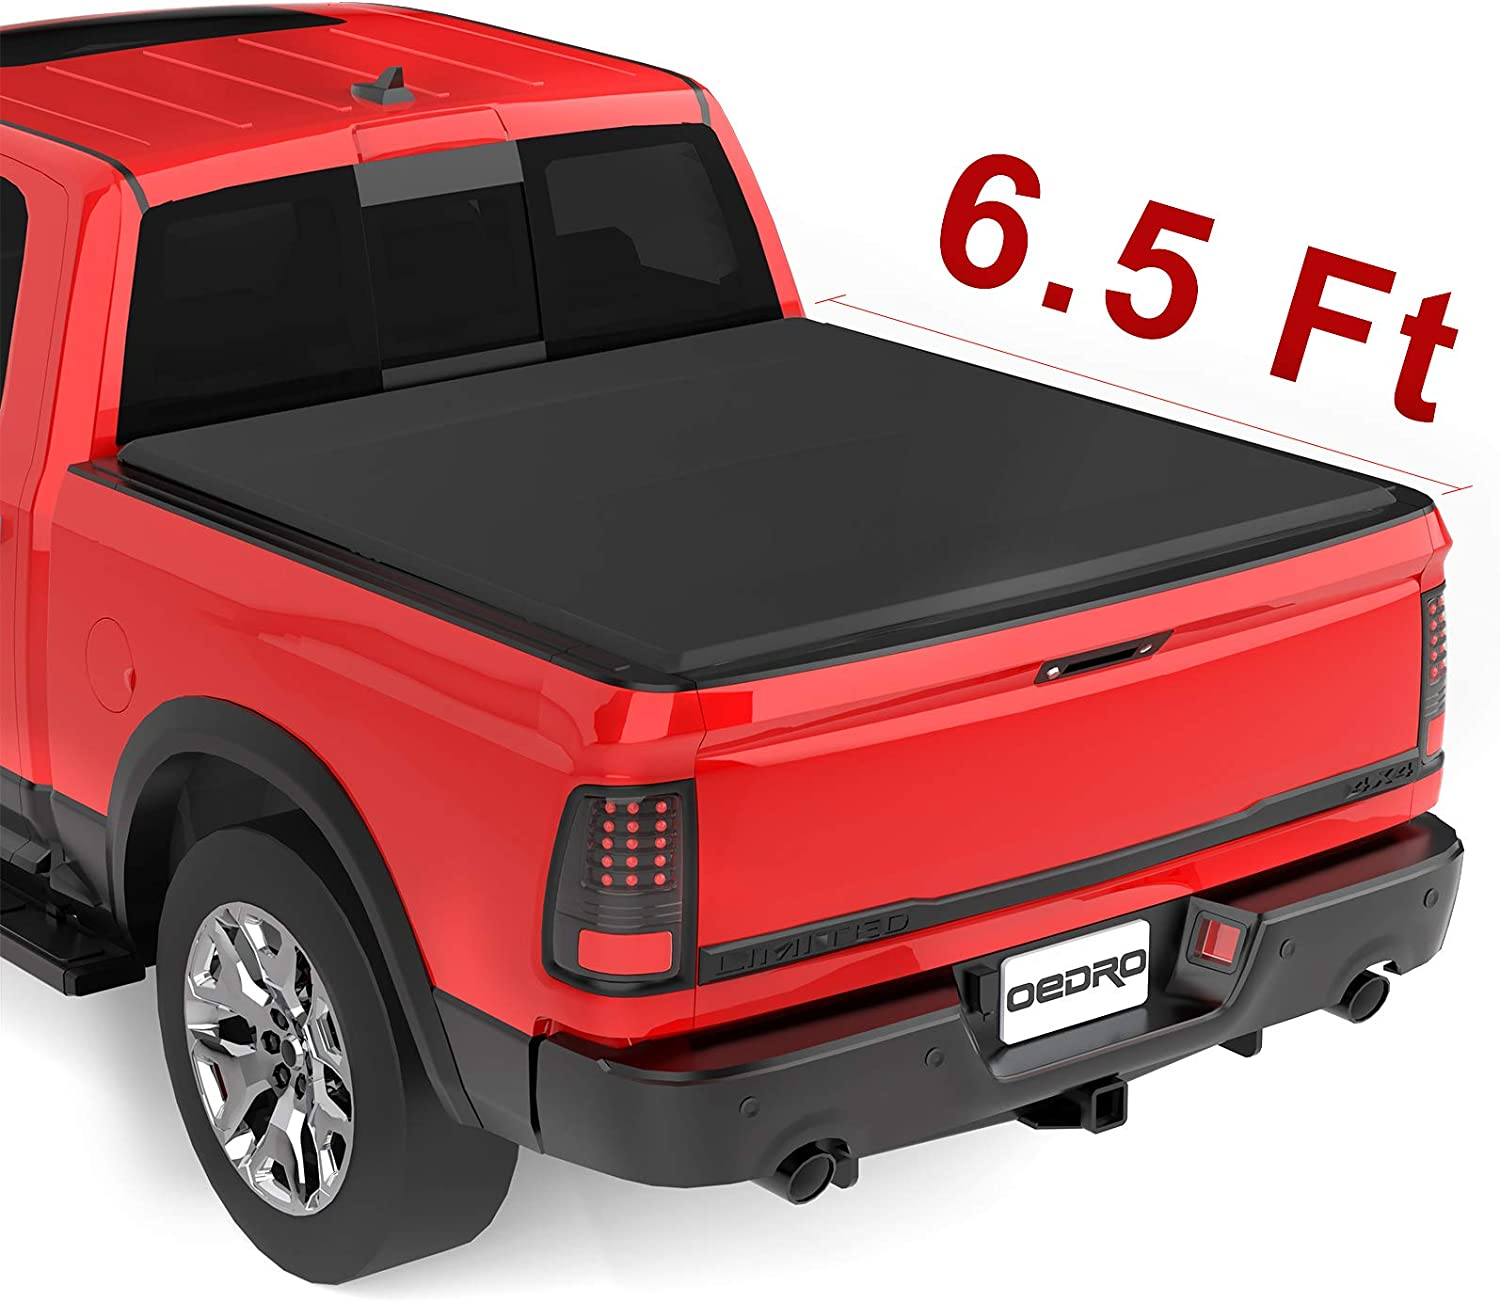 Tonneau Covers Automotive Gator Etx Soft Tri Fold Truck Bed Tonneau Cover 59205 Fits 2002 2008 Dodge Ram 1500 3500 8 Bed Made In The Usa